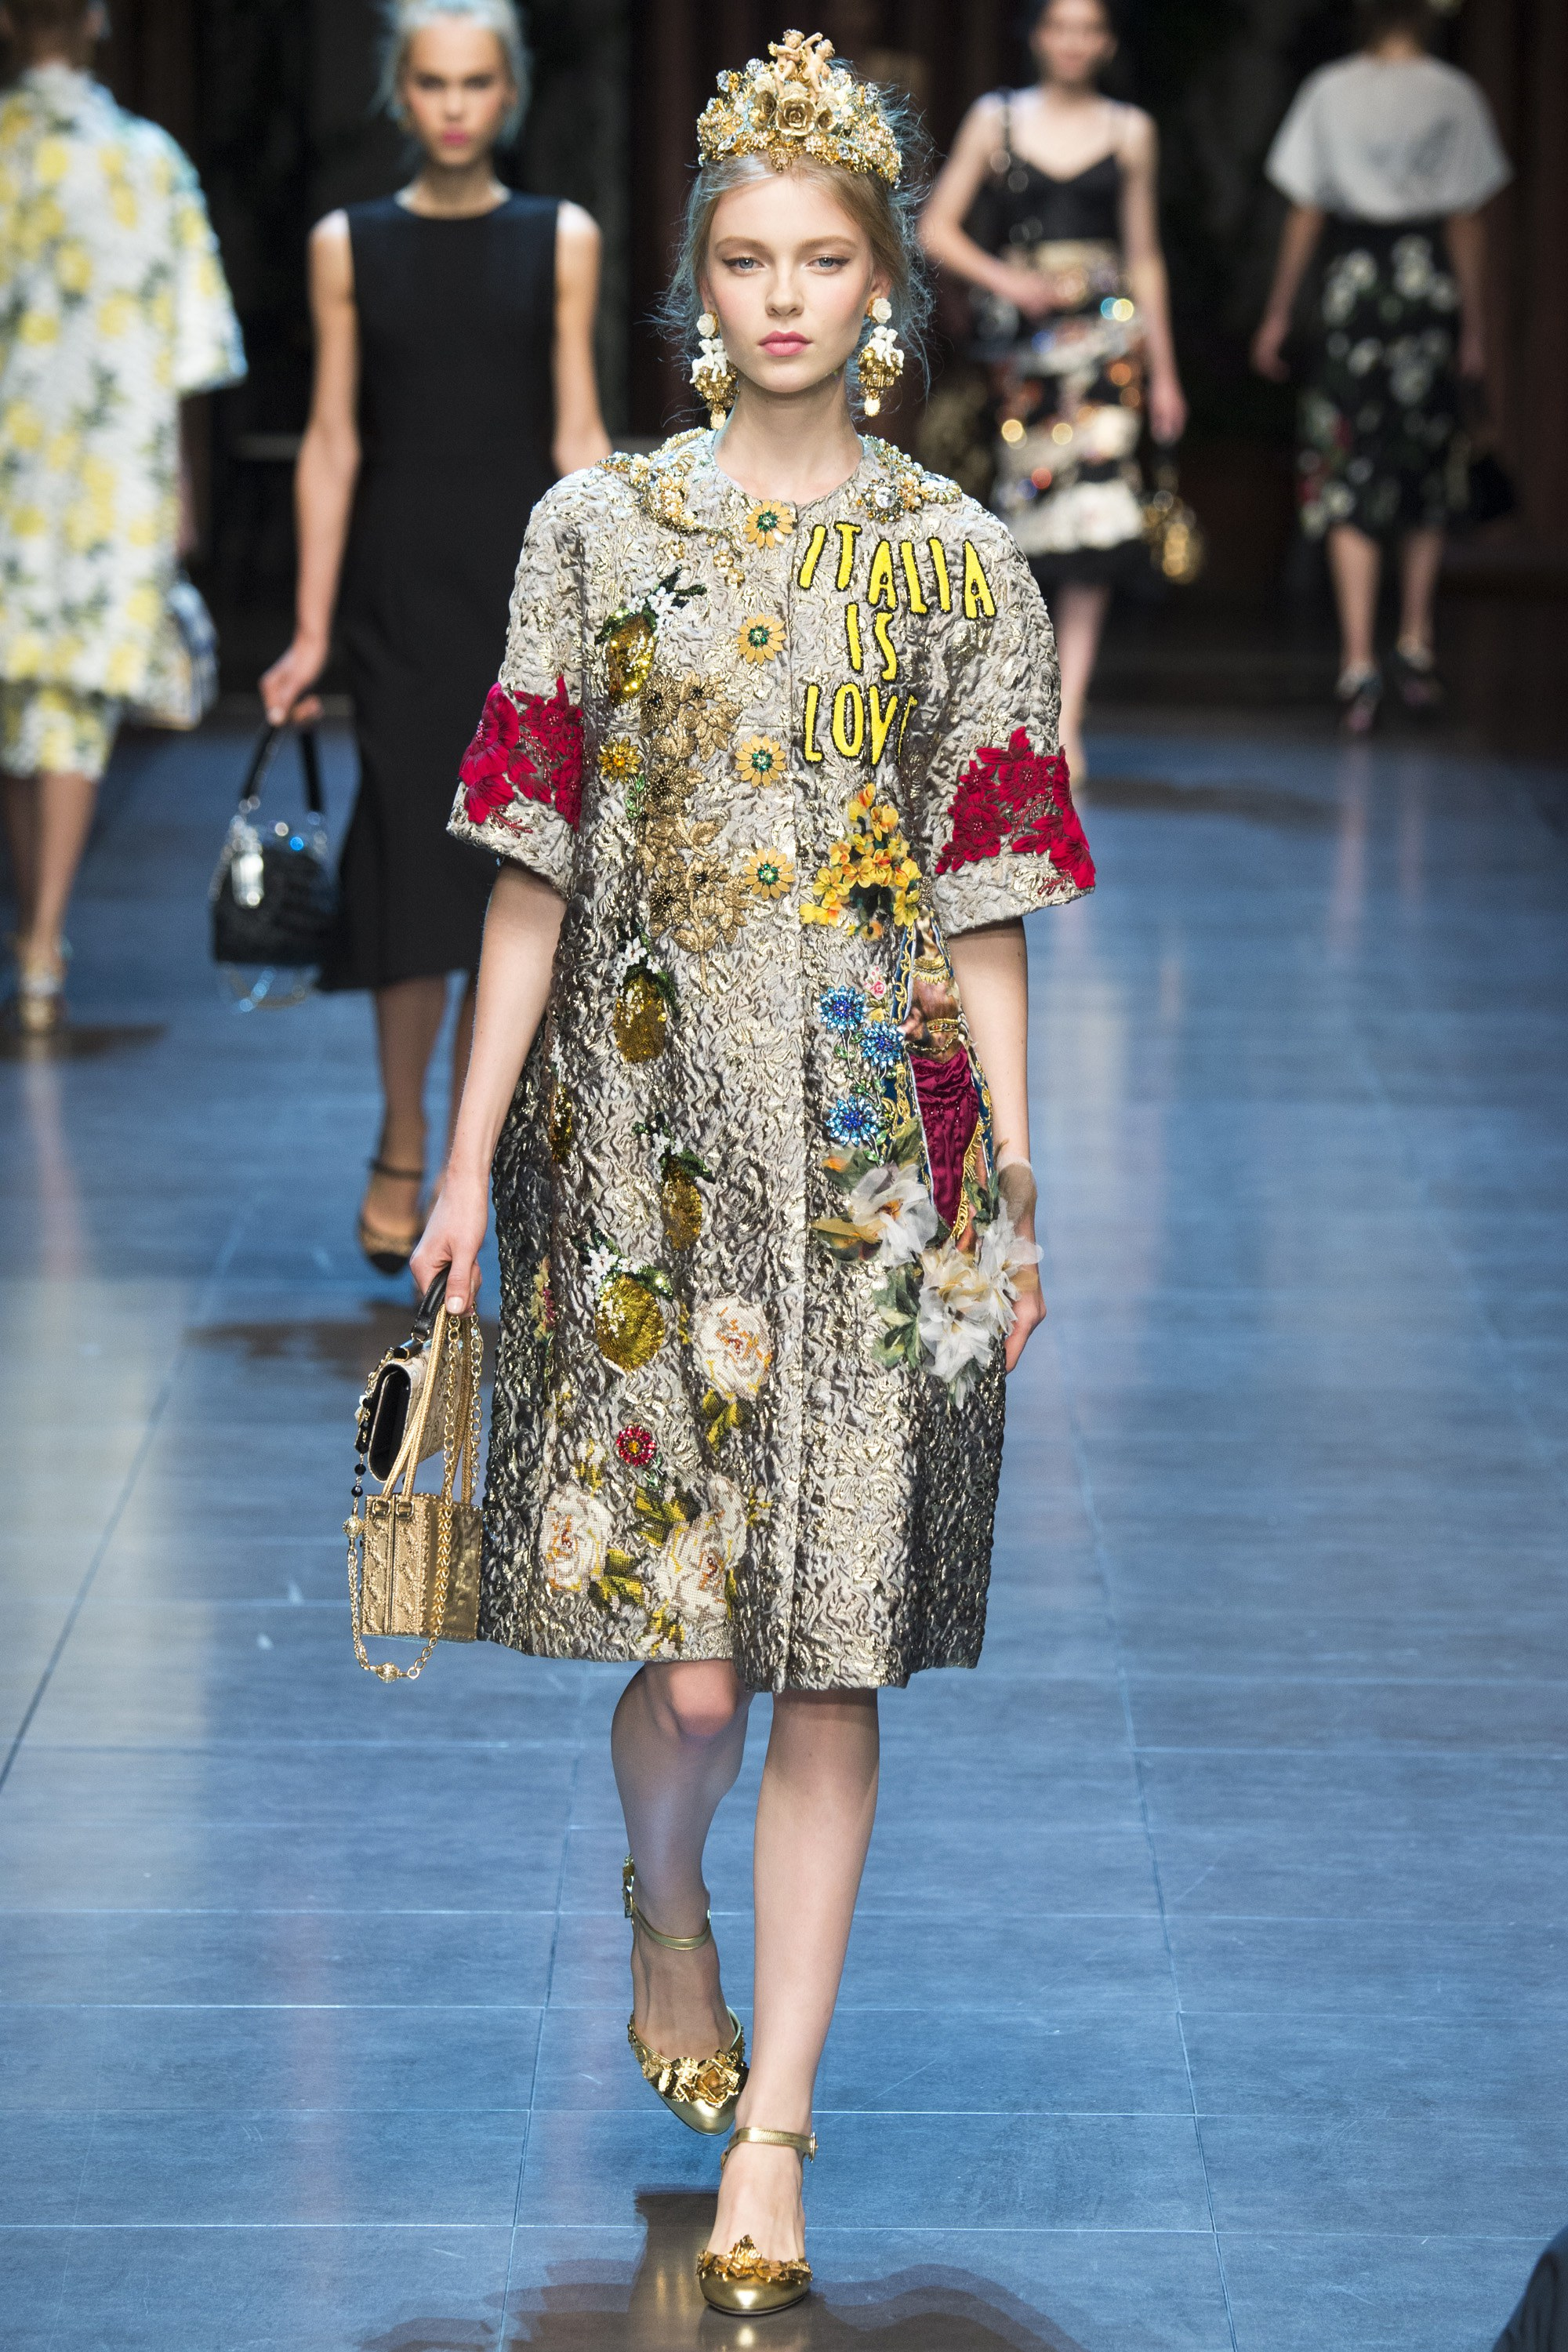 Milan-Fashion-Week-Dolce-Gabbana-8